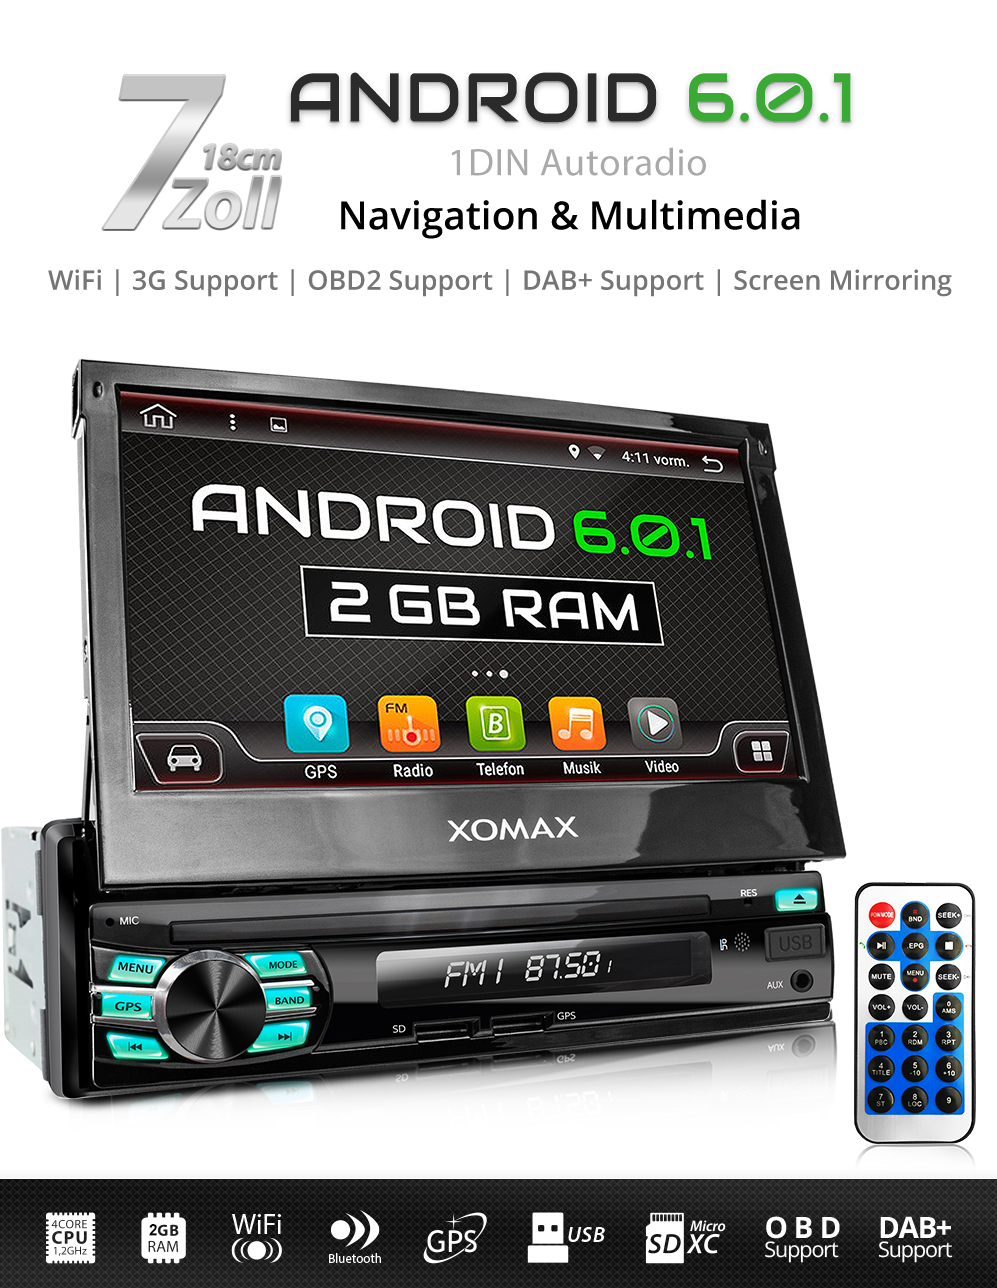 autoradio mit android 6 0 1 4core 2gb ram navi gps. Black Bedroom Furniture Sets. Home Design Ideas